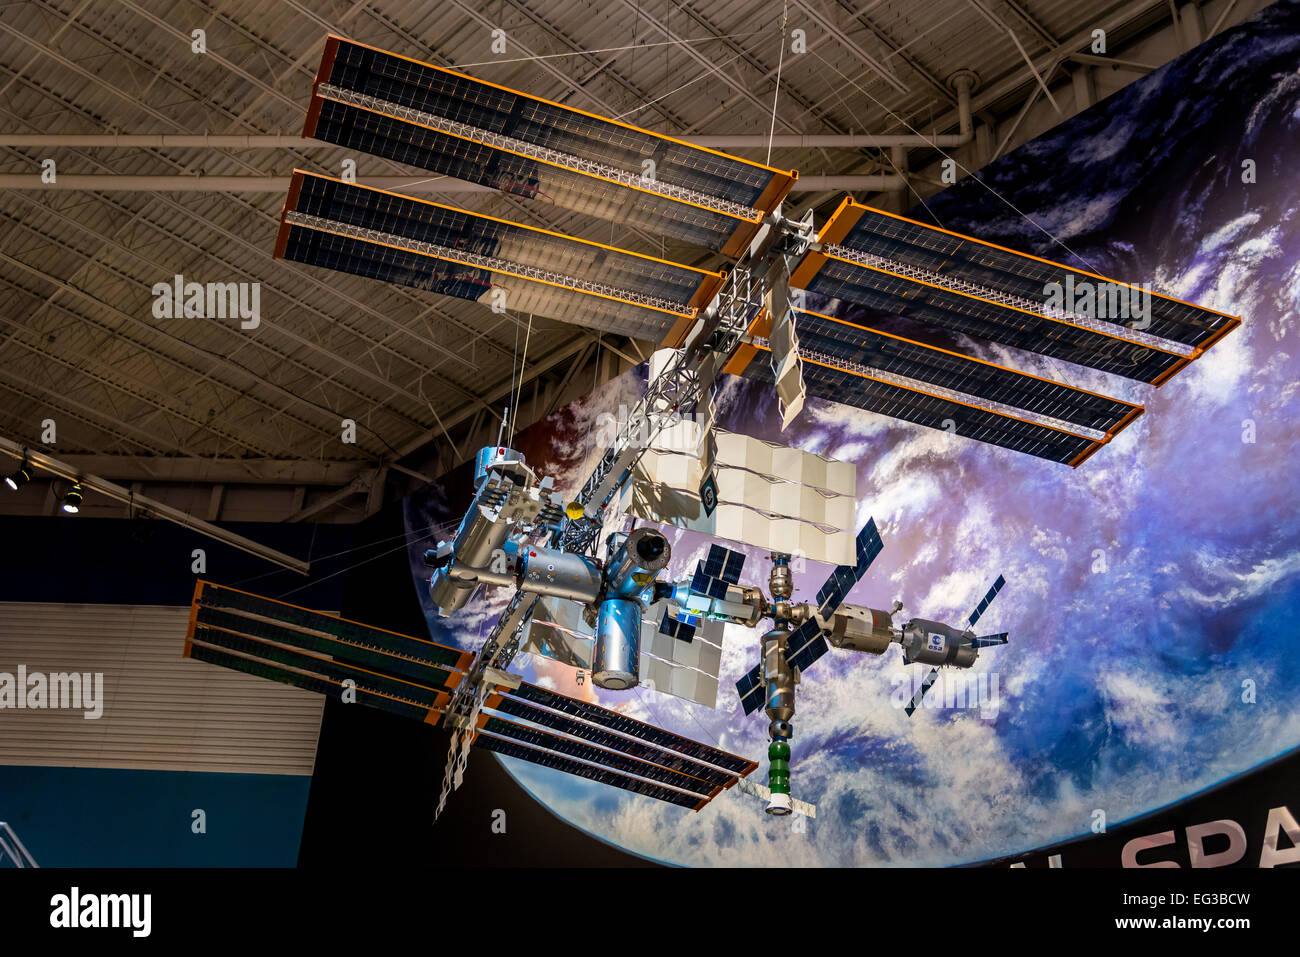 NASA Space Station Texas - Pics about space